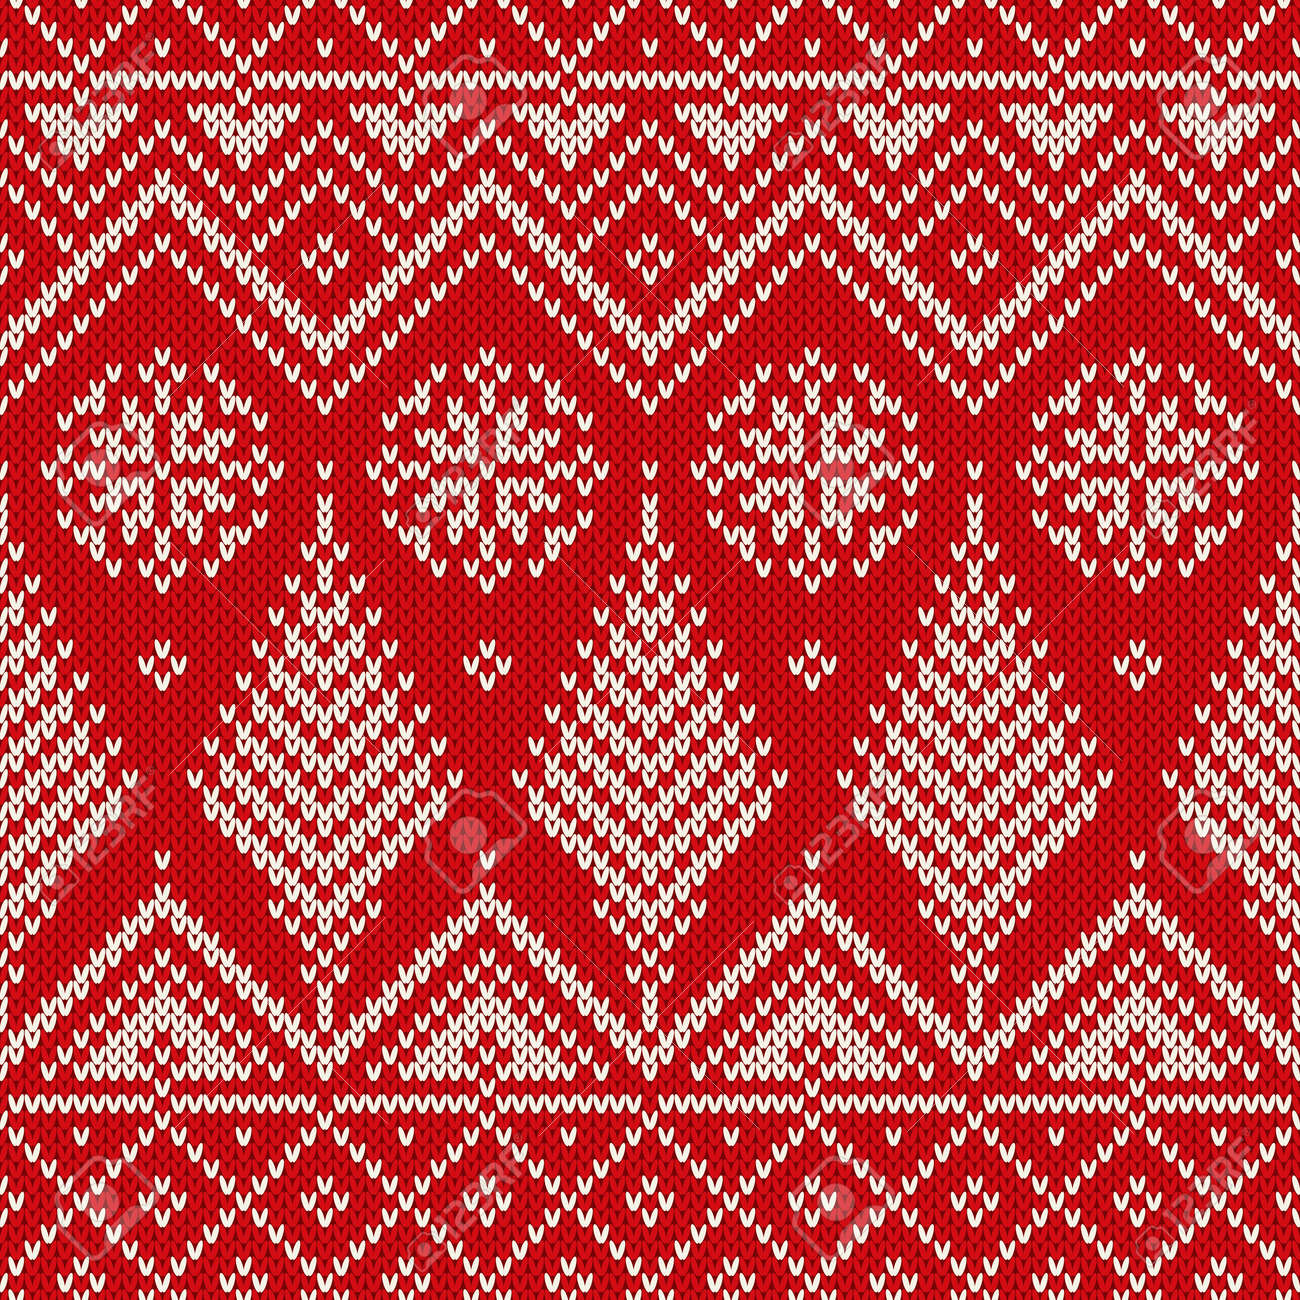 Christmas Seamless Knit Pattern With Snowflakes And Christmas ...